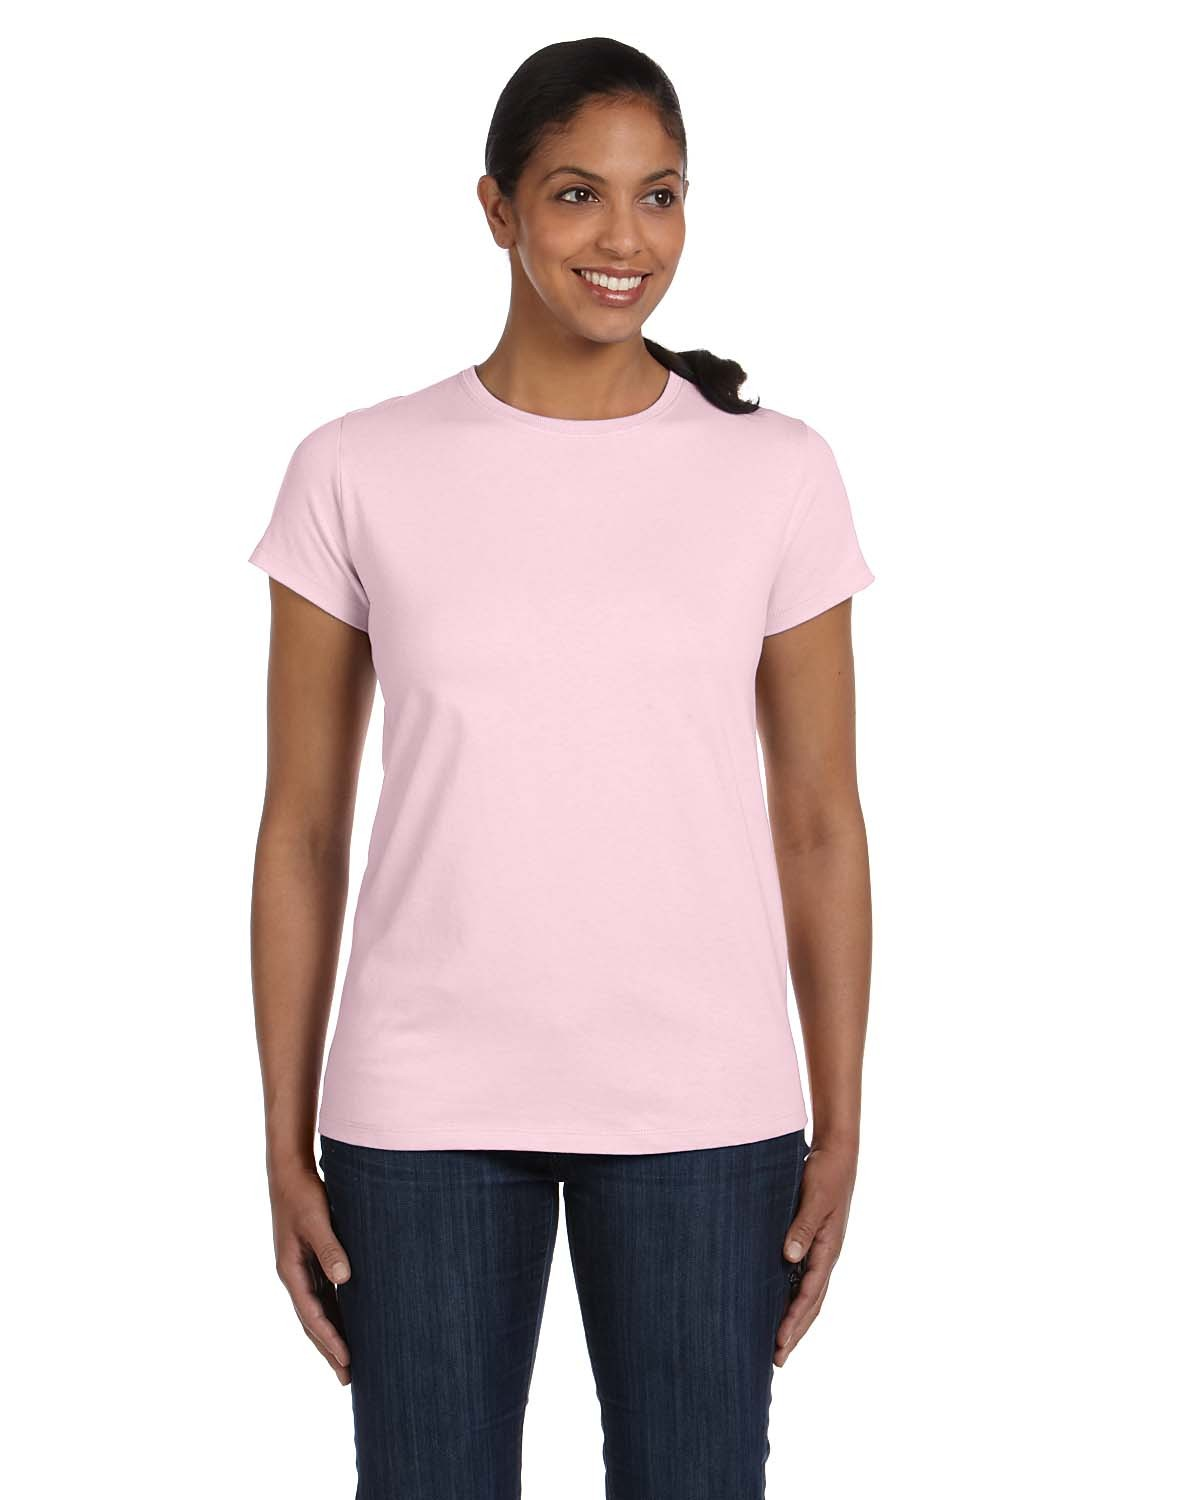 5680 Hanes PALE PINK